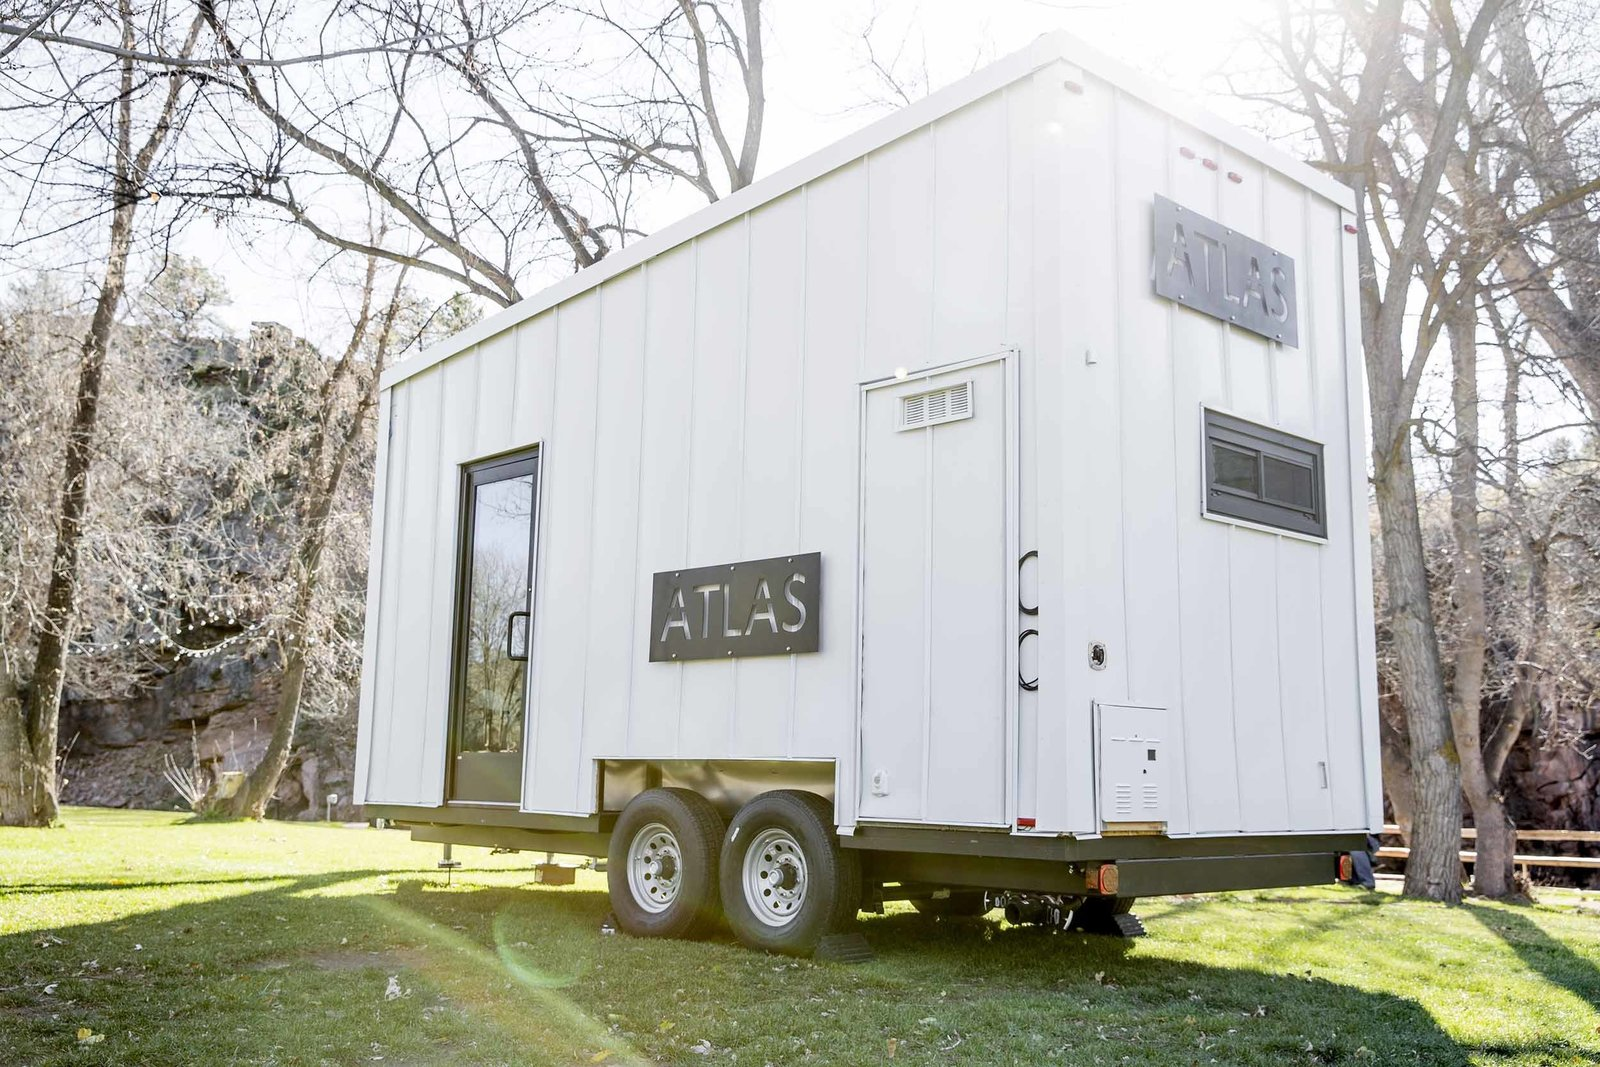 Rooftop solar panels and a rainwater filtration system minimize its dependence on the grid.  A Tiny Trailer Home Harvests Solar Power and Rainwater to Save Energy by Luke Hopping